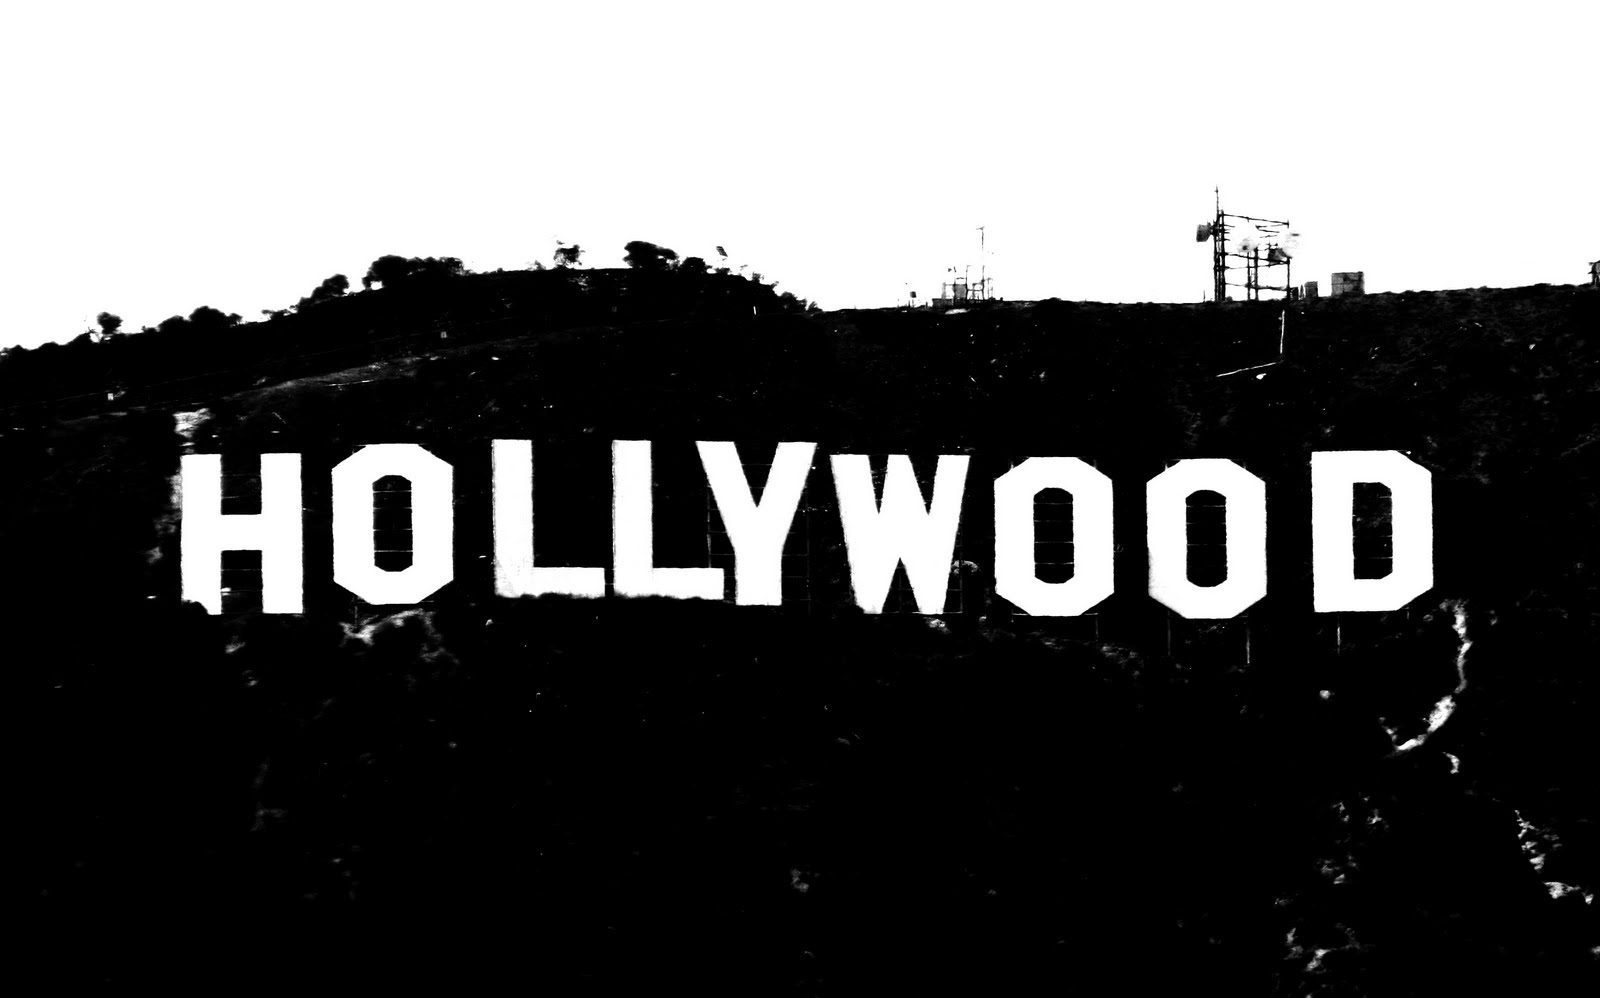 Letter clipart hollywood Clip Cliparts Clipart The Art